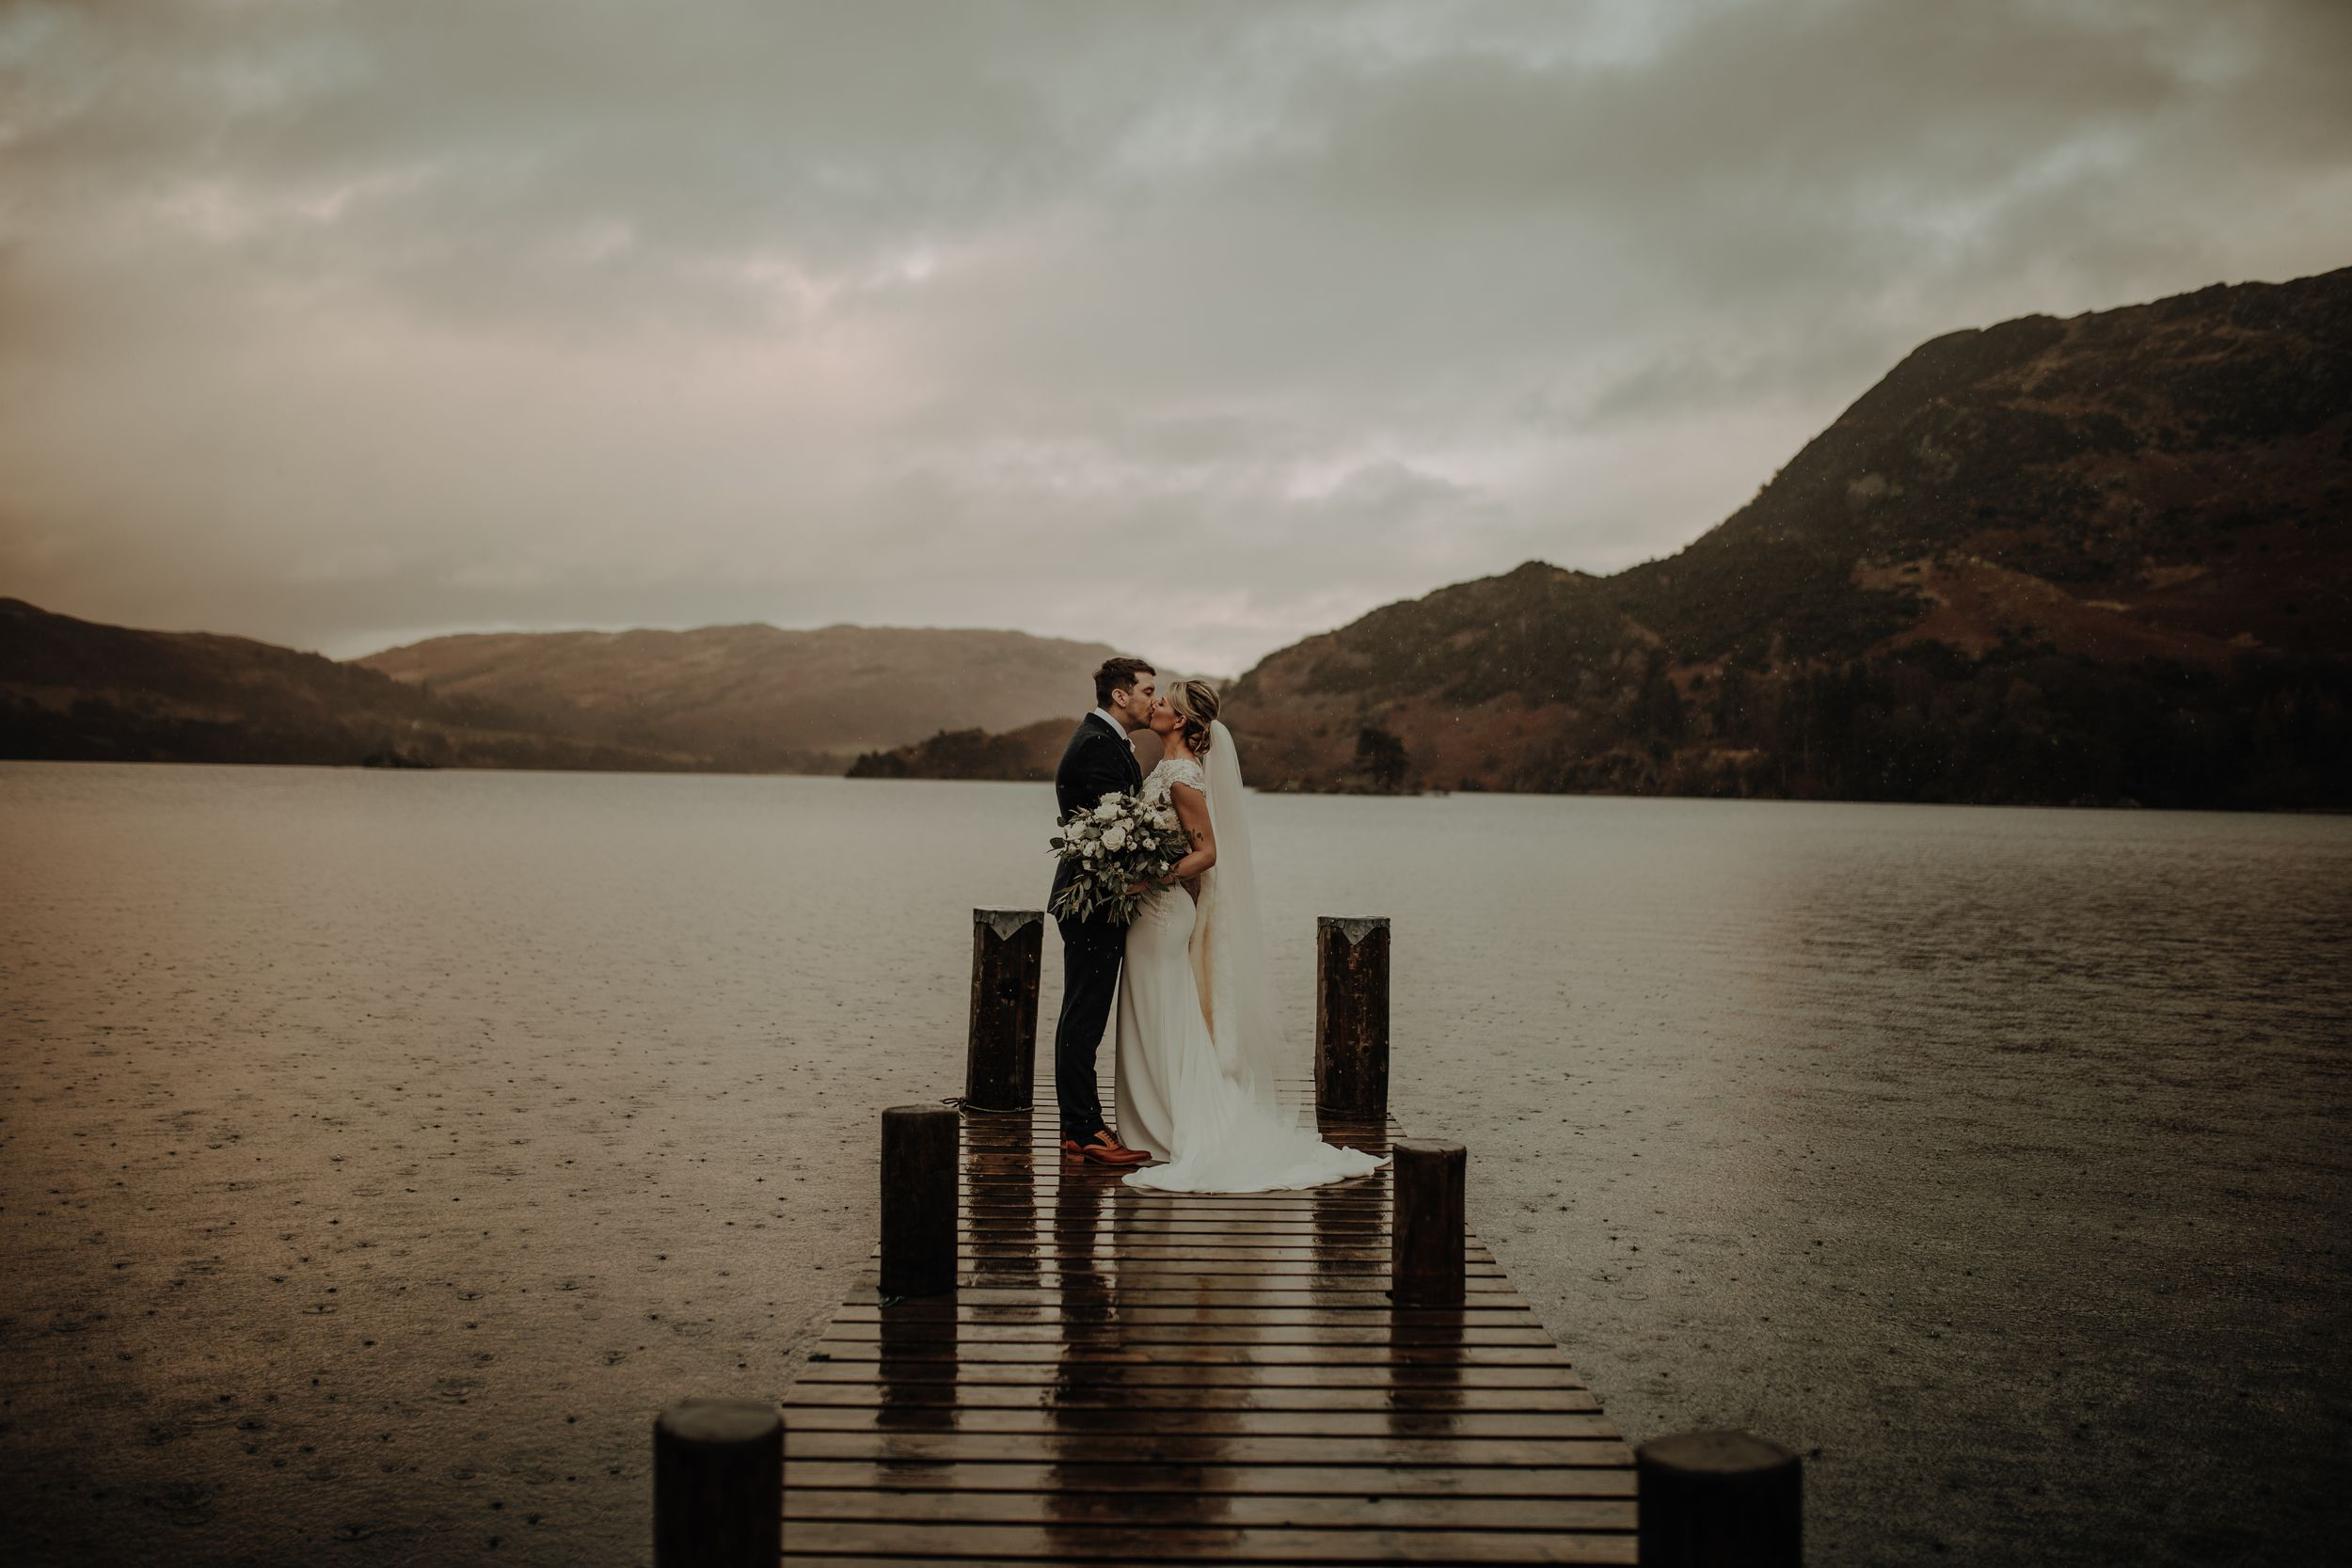 Lake District Wedding at Inn on the Lake. Bride and groom on jetty. Lake district wedding photographer. Winter wedding